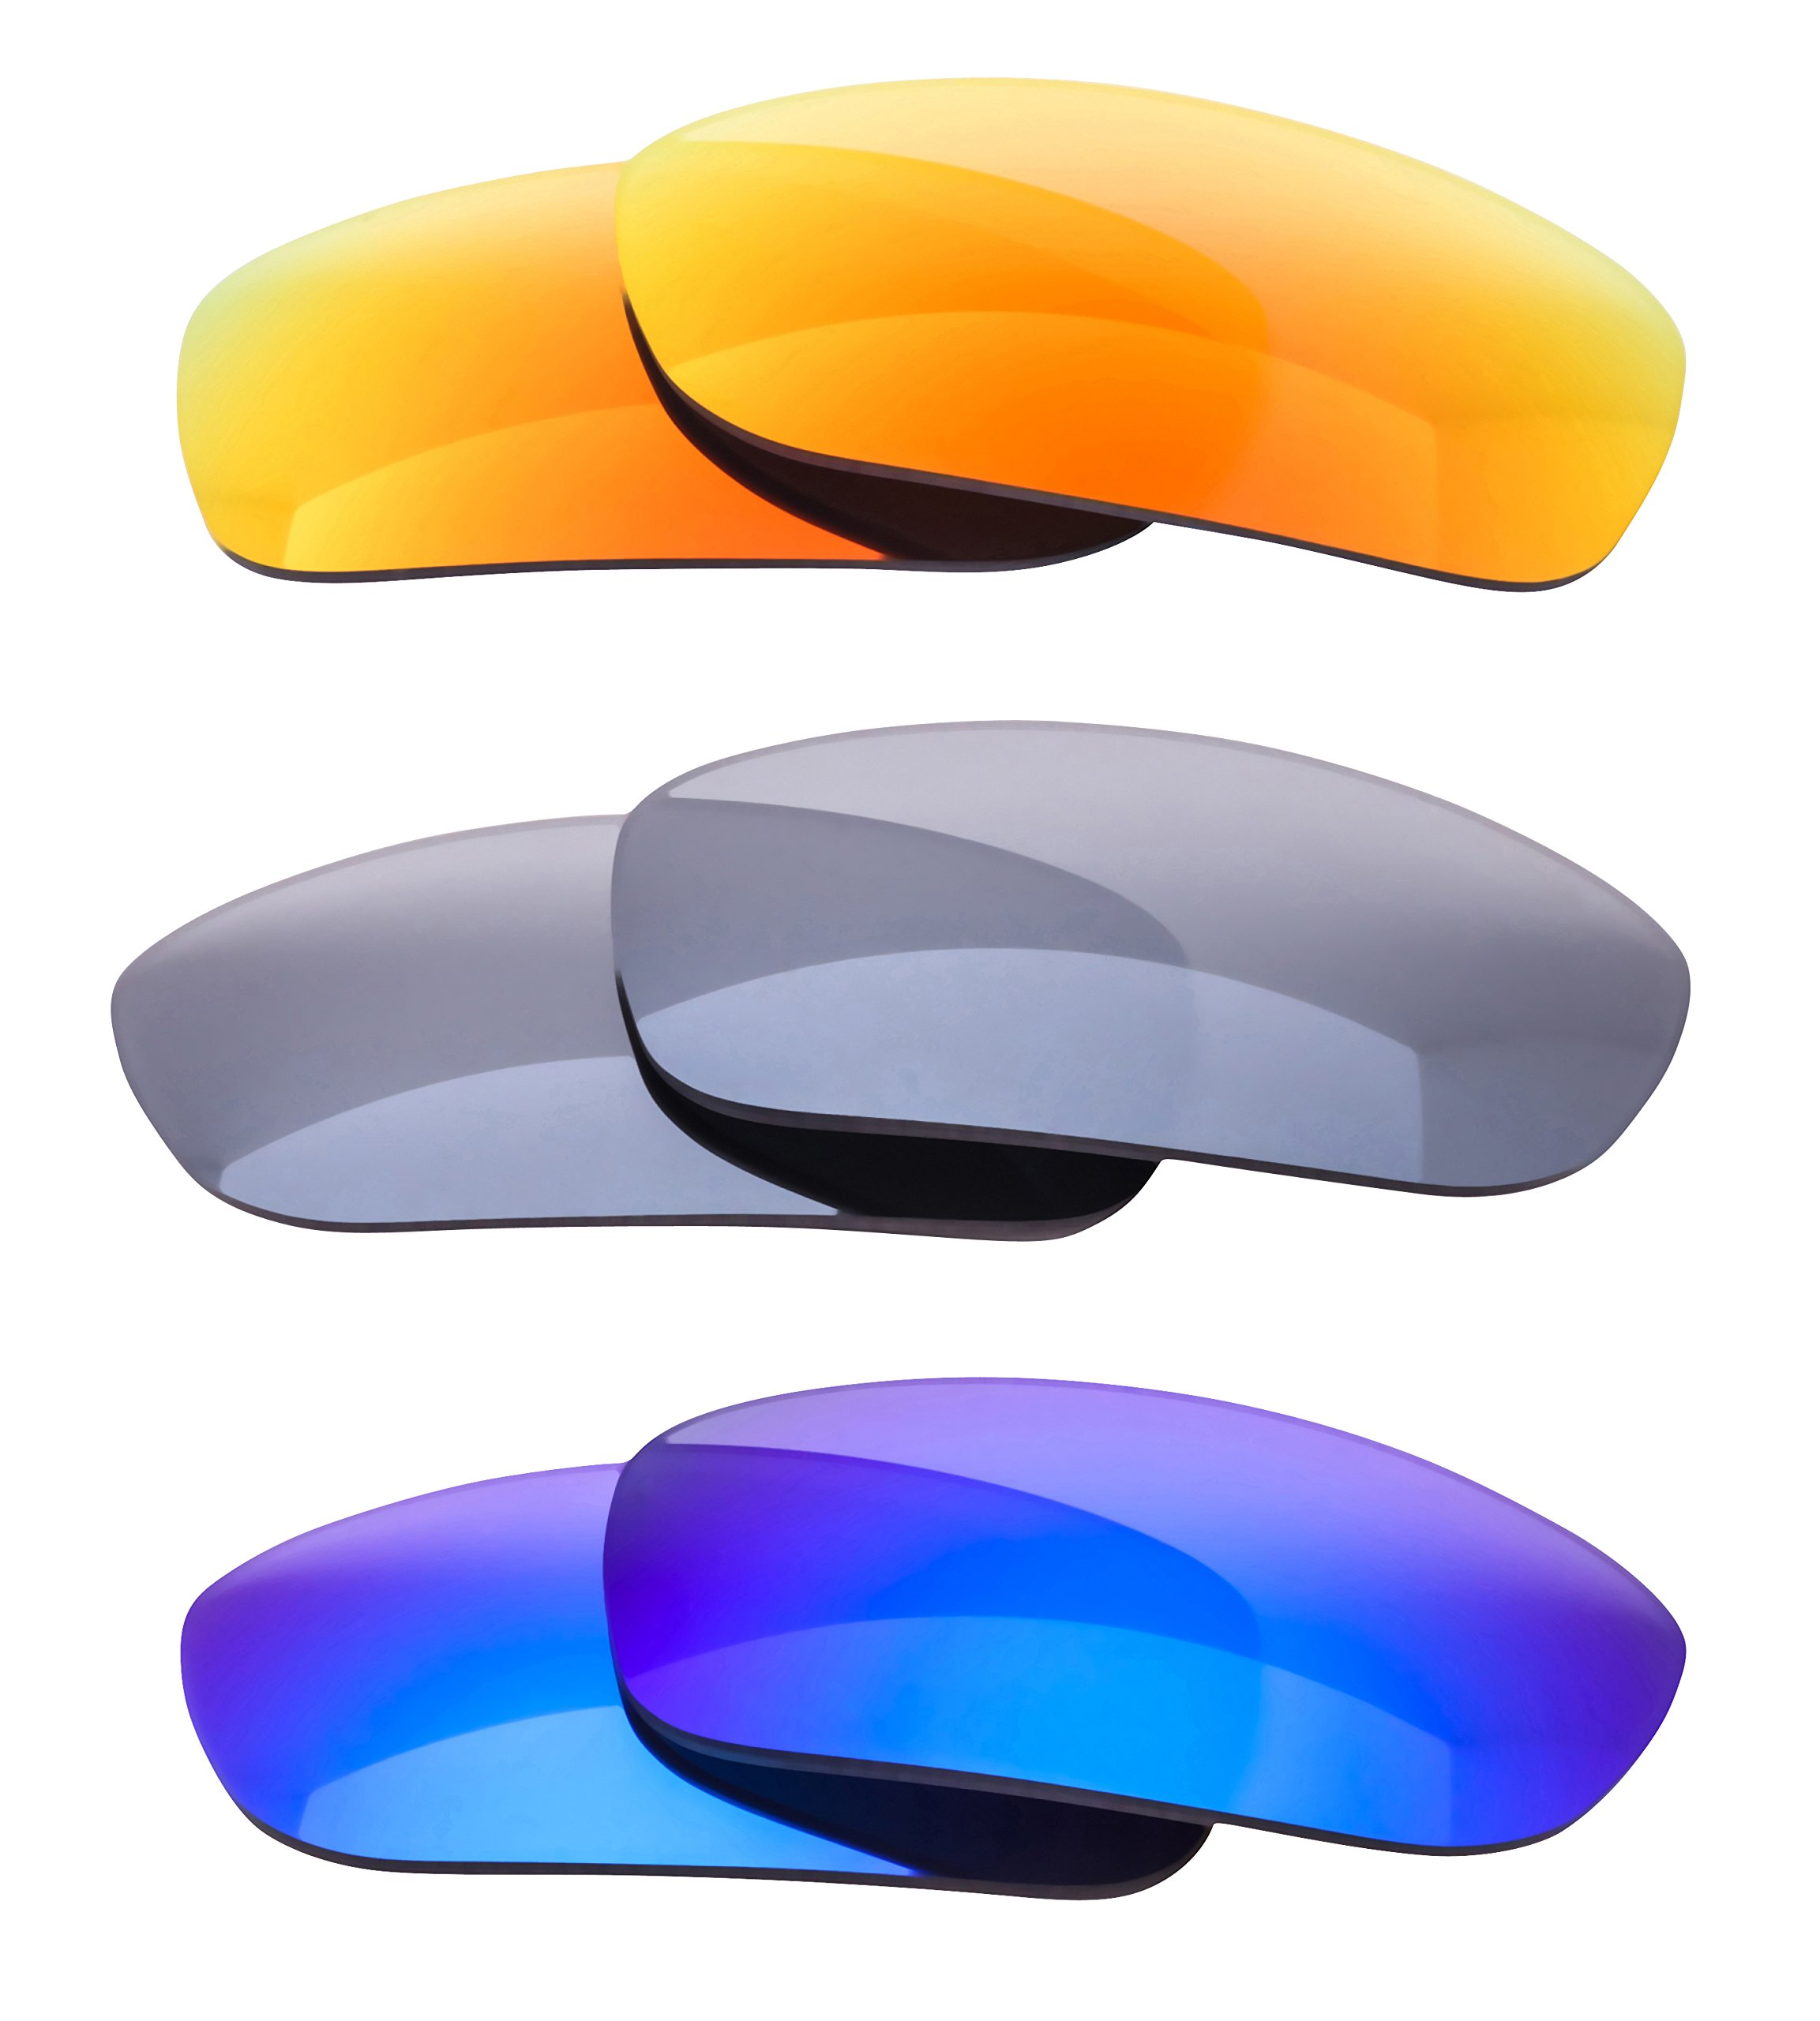 LenzFlip Replacement Lenses for Oakley Fives Squared - 3 pc Patriotic Pack by LenzFlip